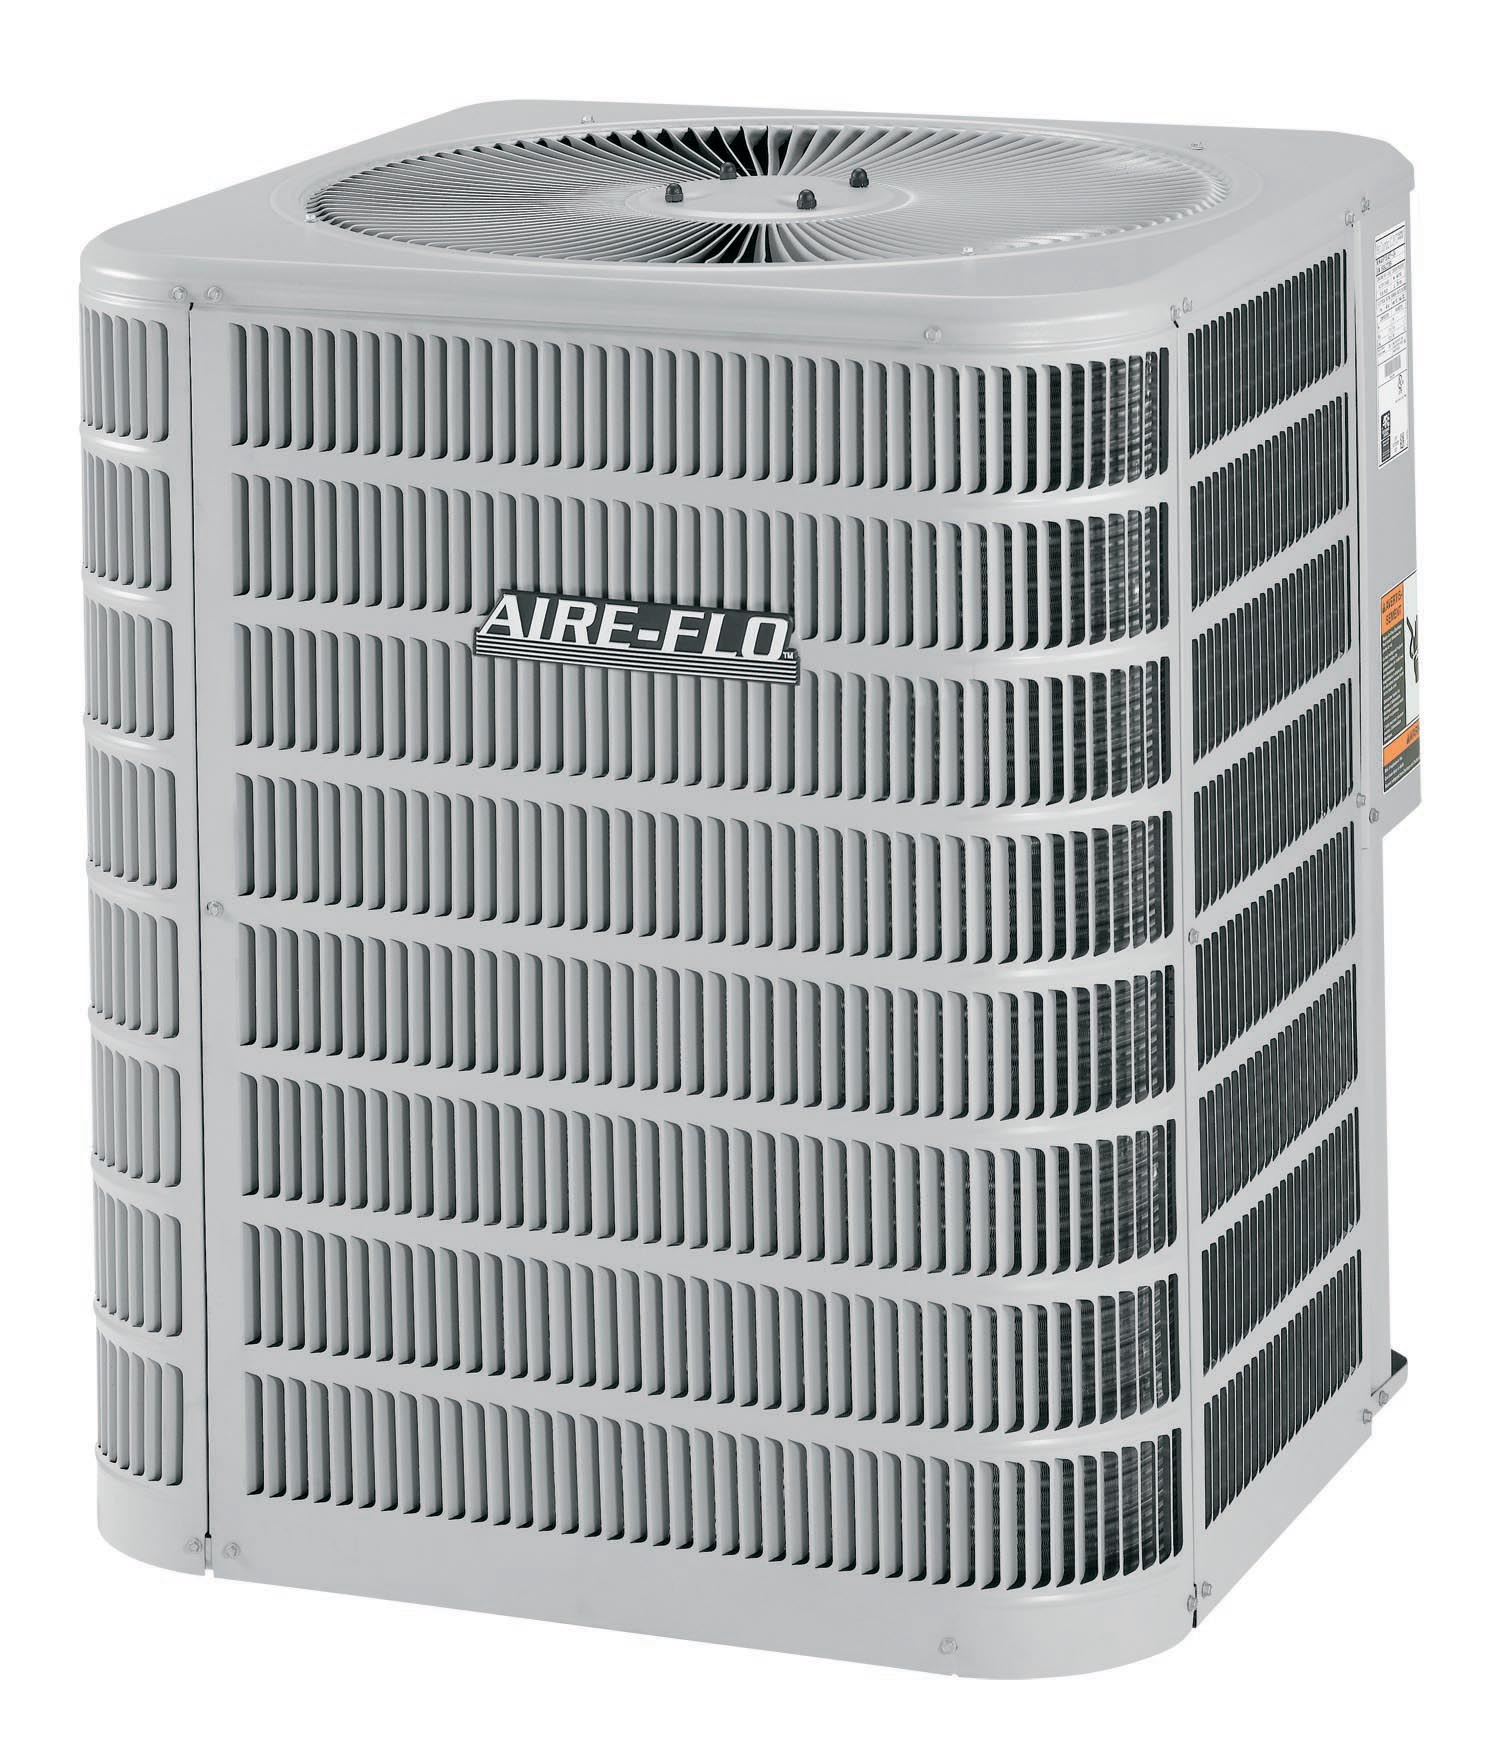 Aire flo 13 seer air conditioners air conditioning for Fan motor for lennox air conditioner